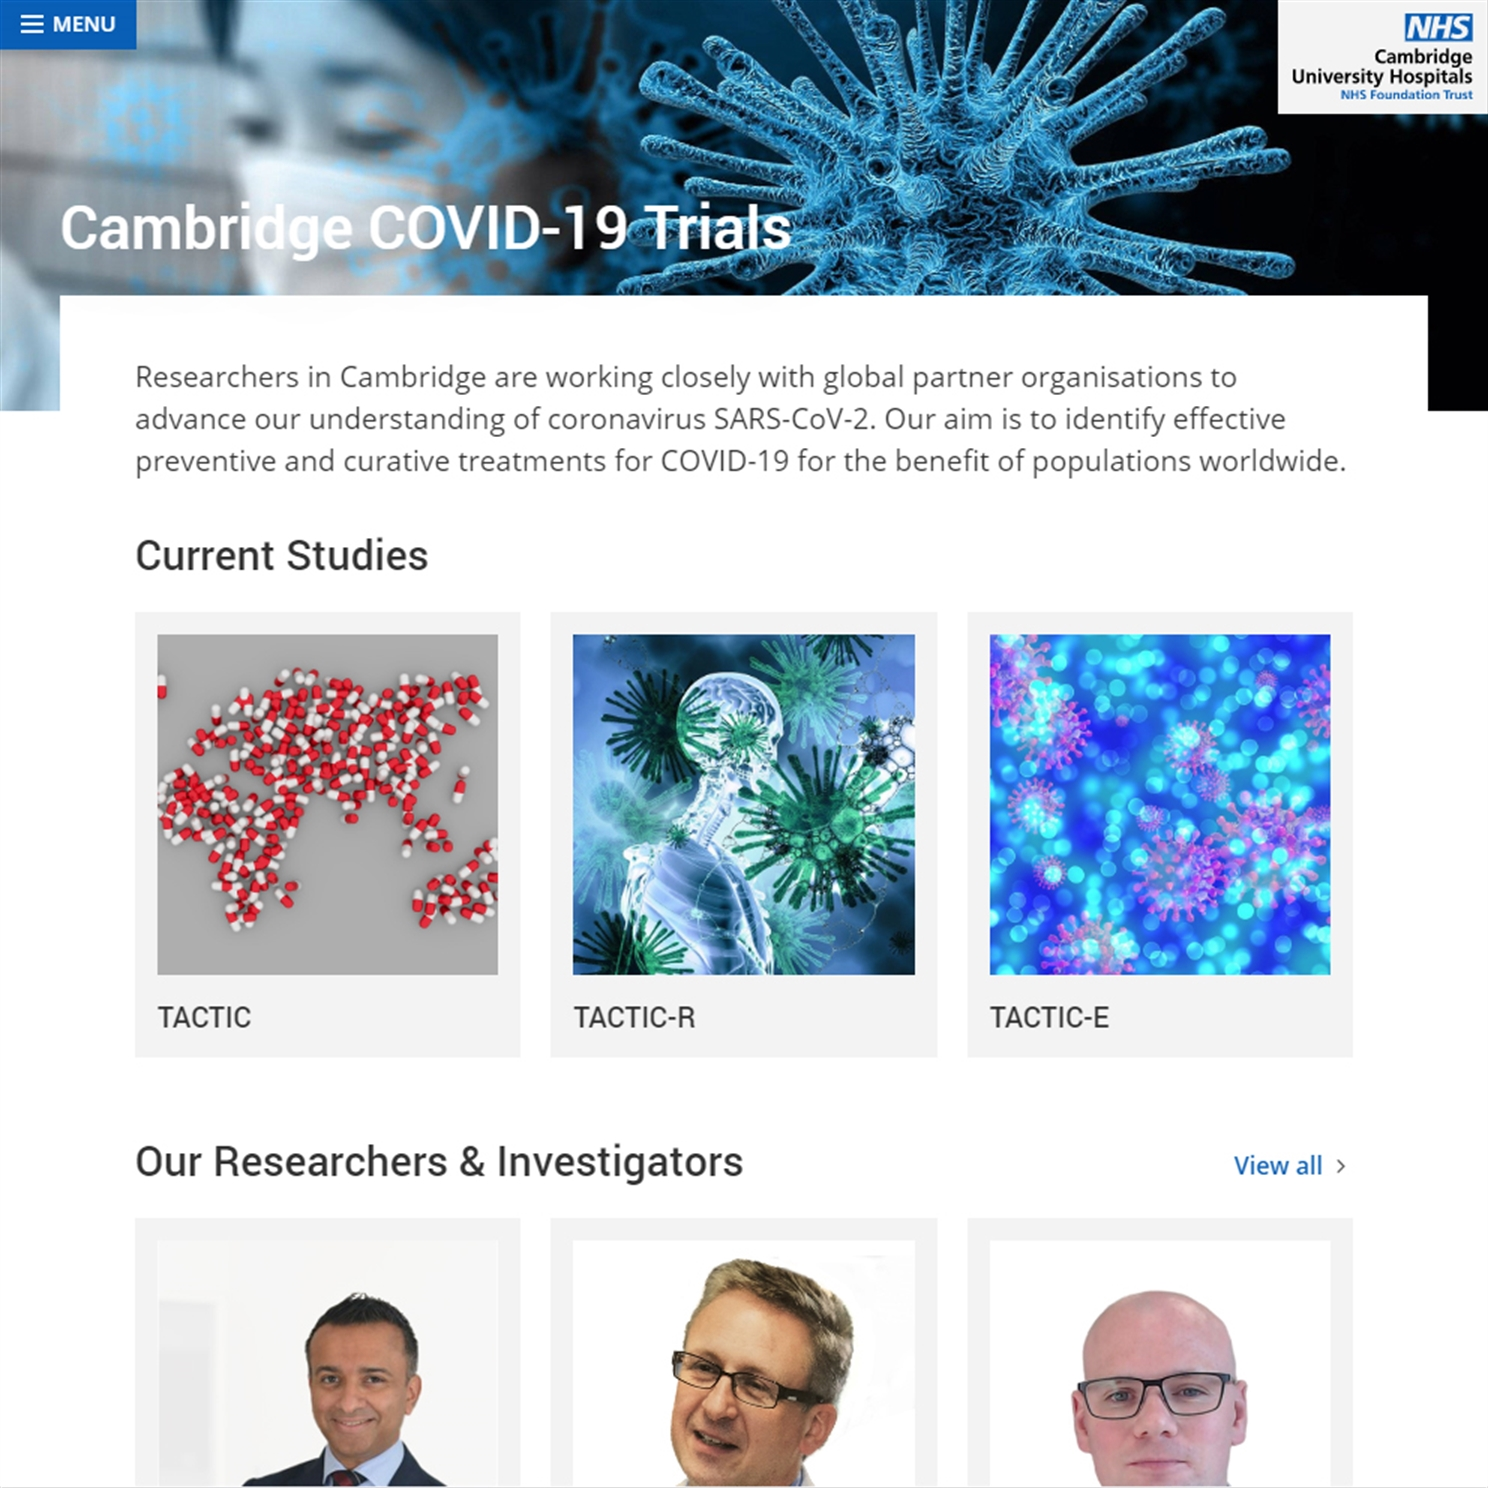 Isle launches information website for Cambridge Covid-19 Trials